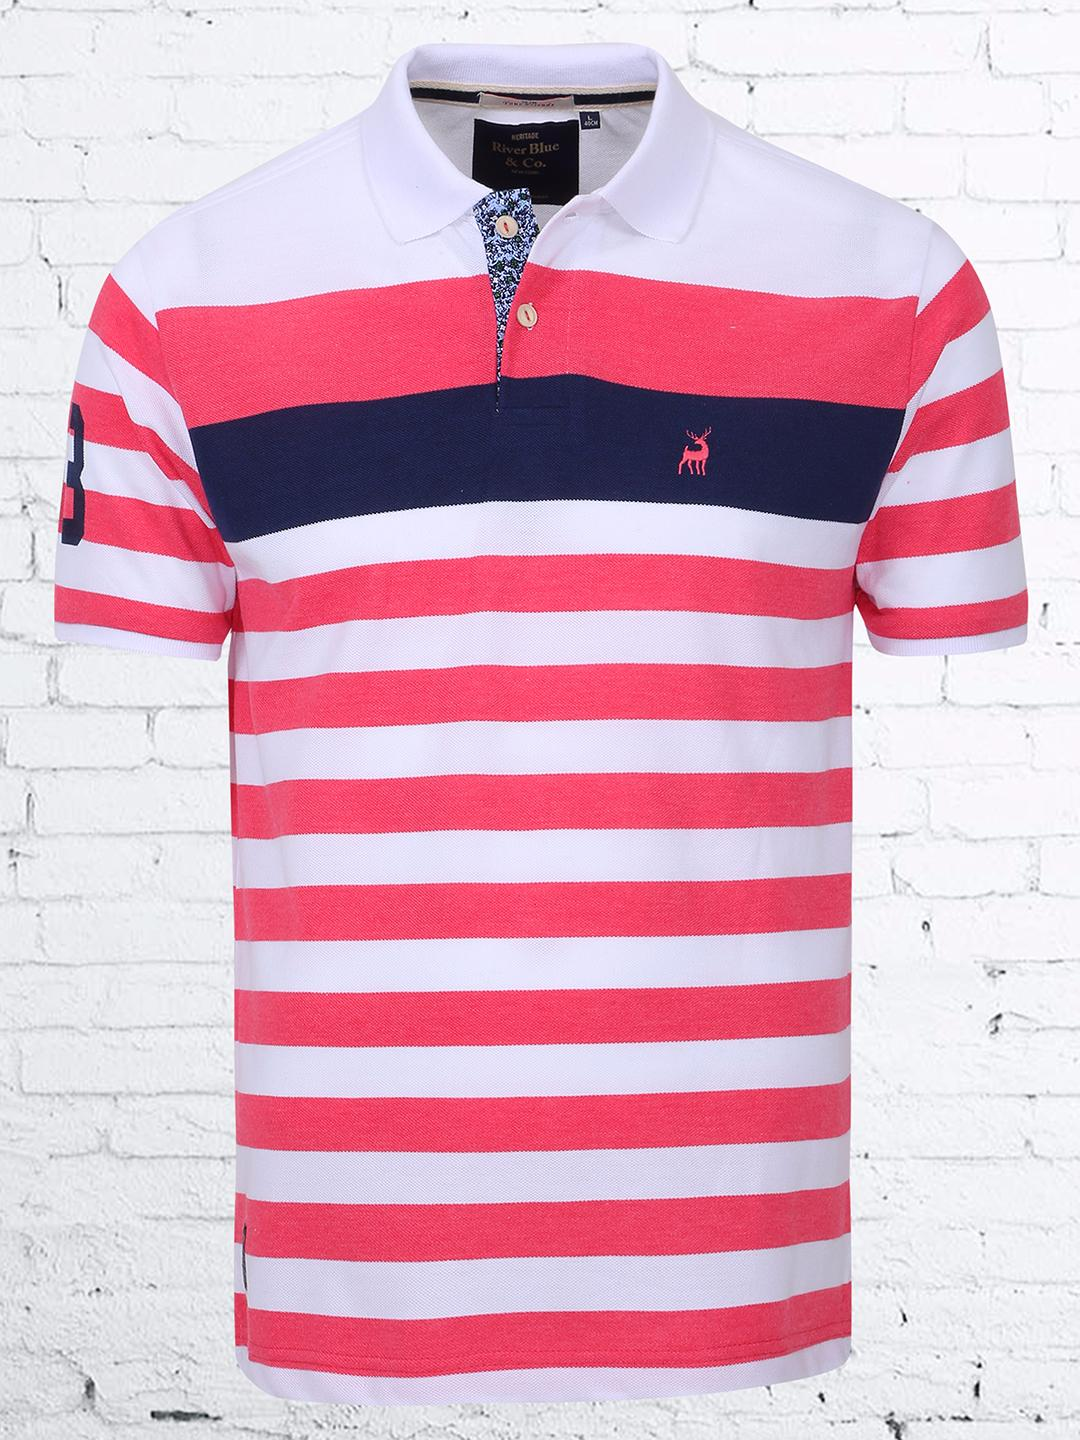 River Blue Stripe Pattern Pink And White T Shirt G3